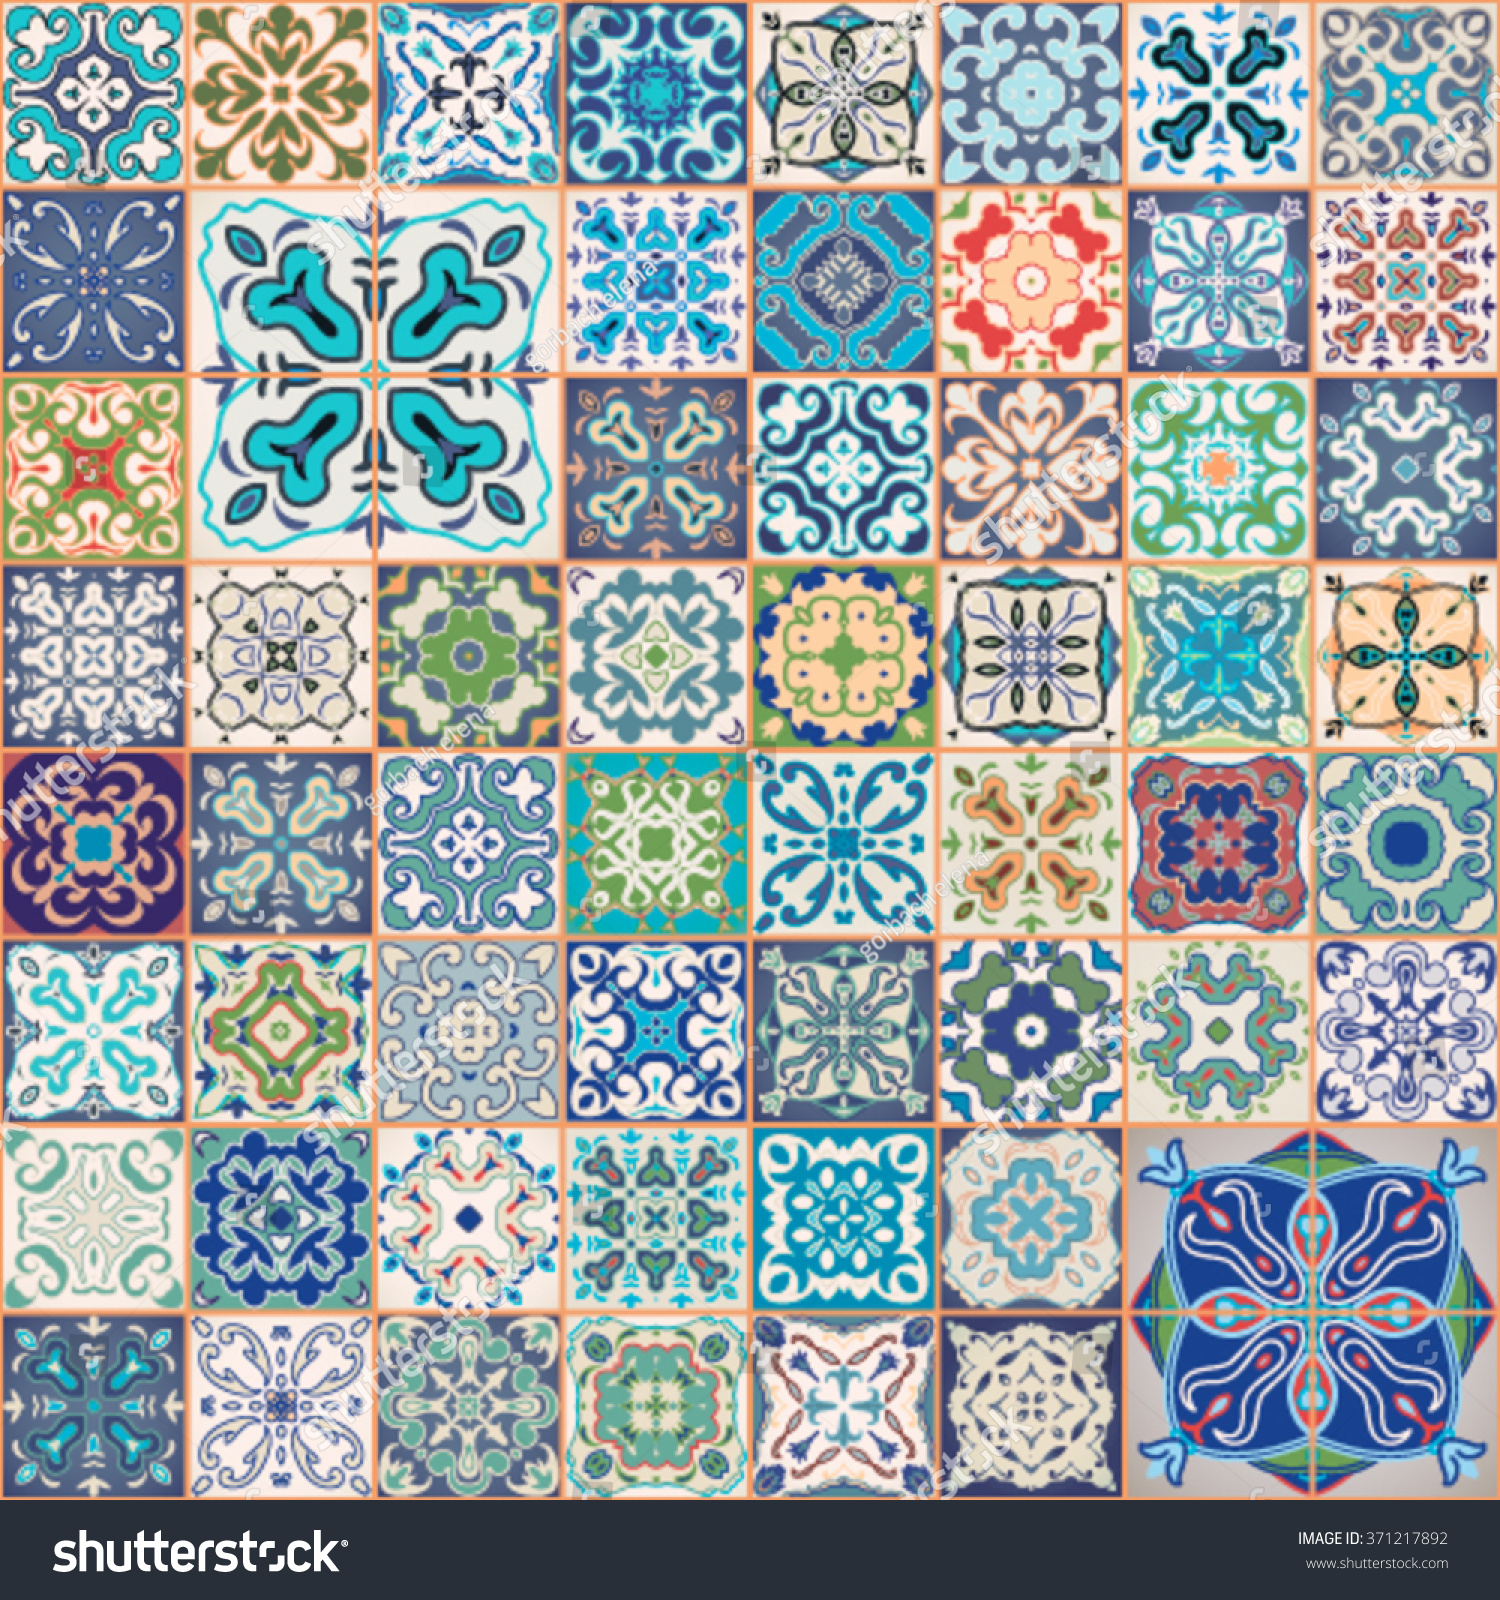 Floral Patchwork Tile Design Colorful Moroccan Stock Vector (Royalty ...